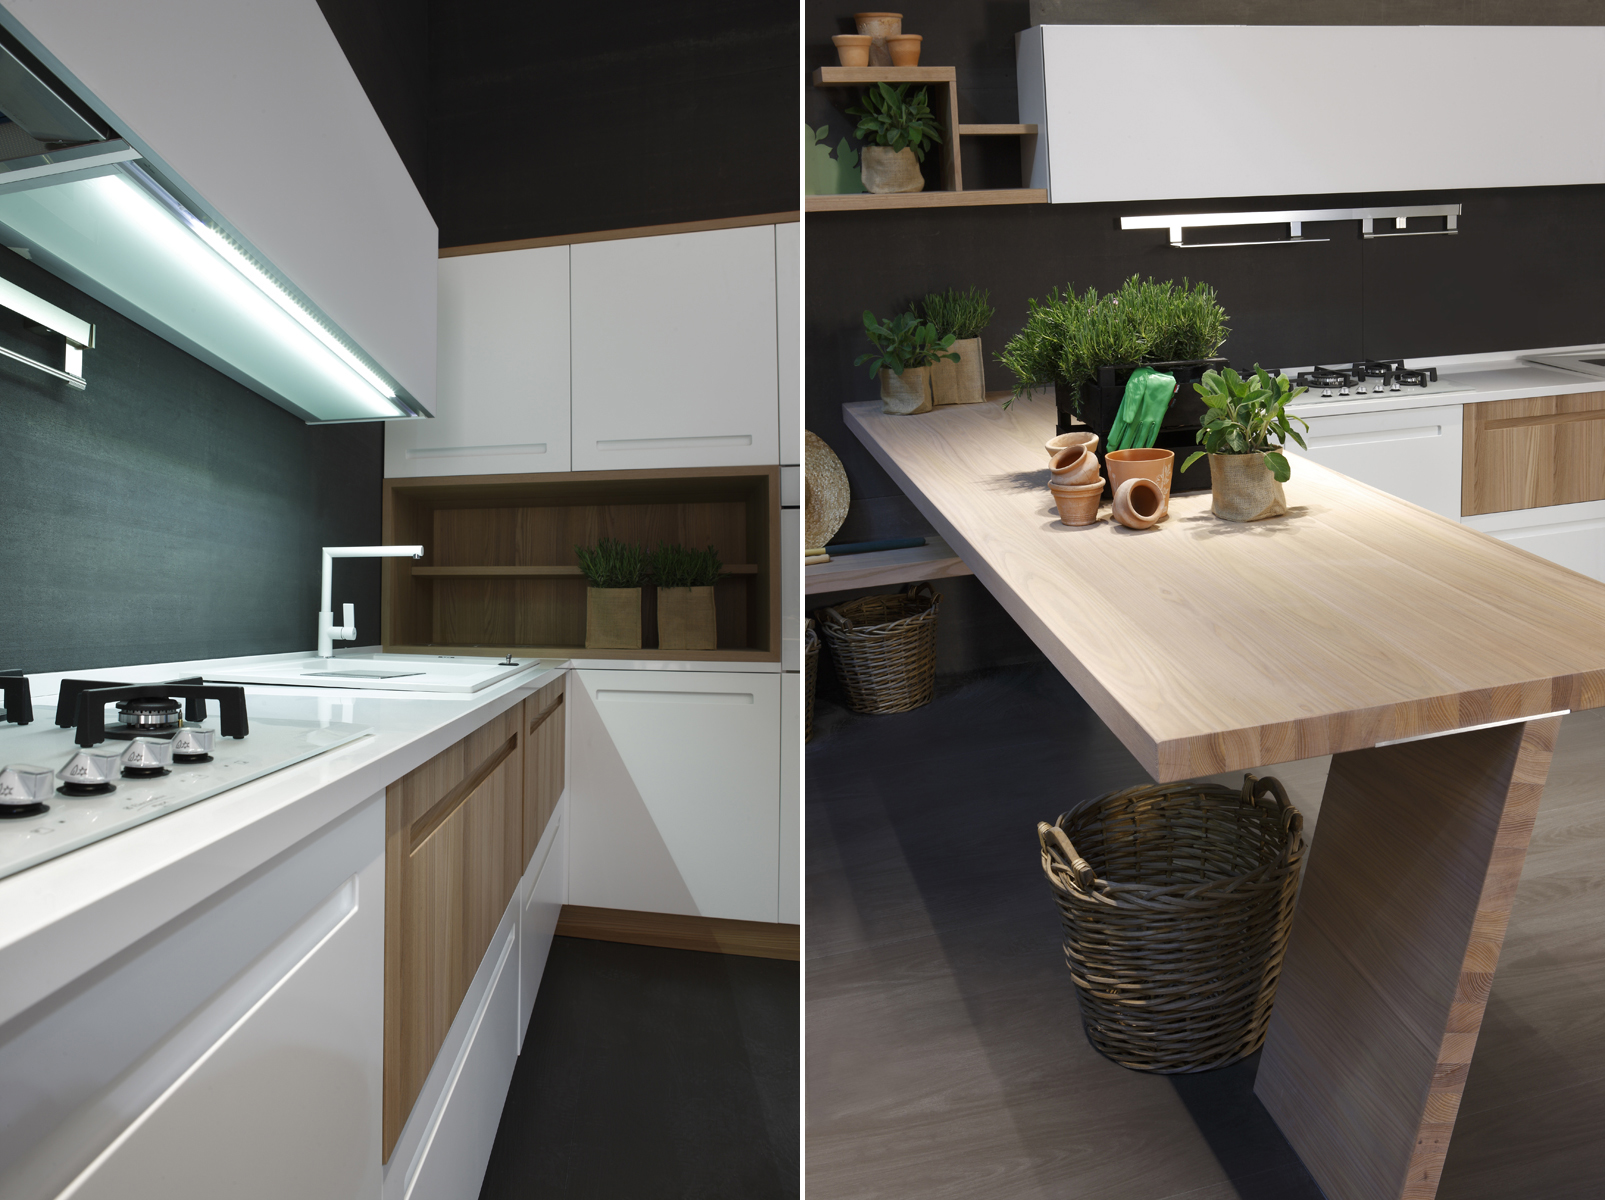 Cucina mood by stosa cucine for Cucine con bancone